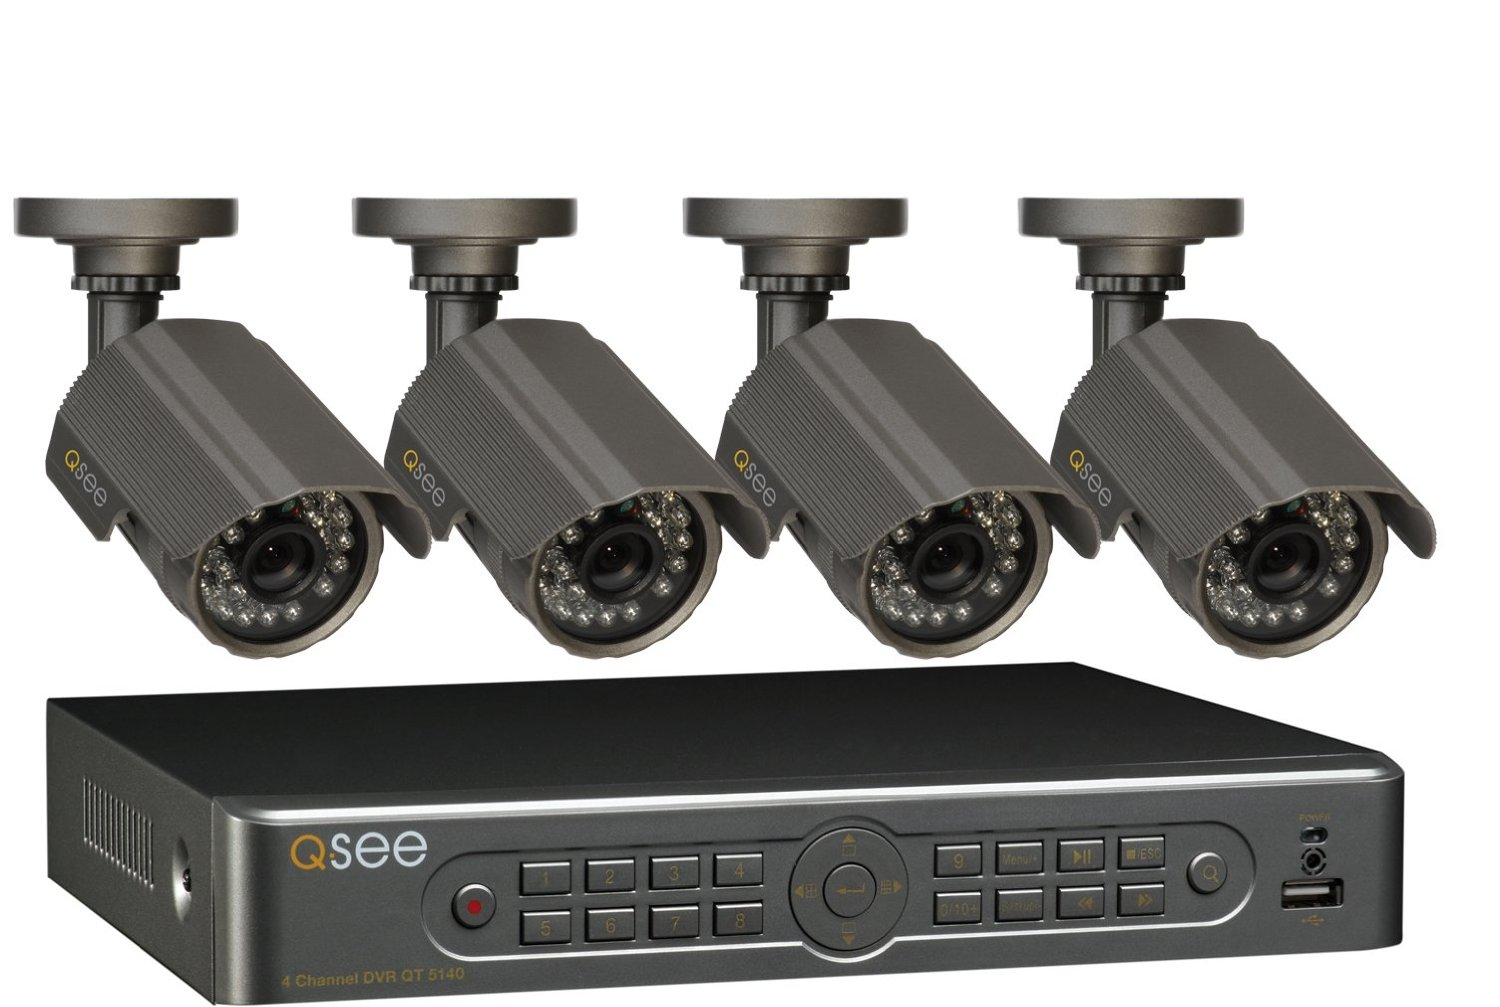 Q-See Night Vision Video Security